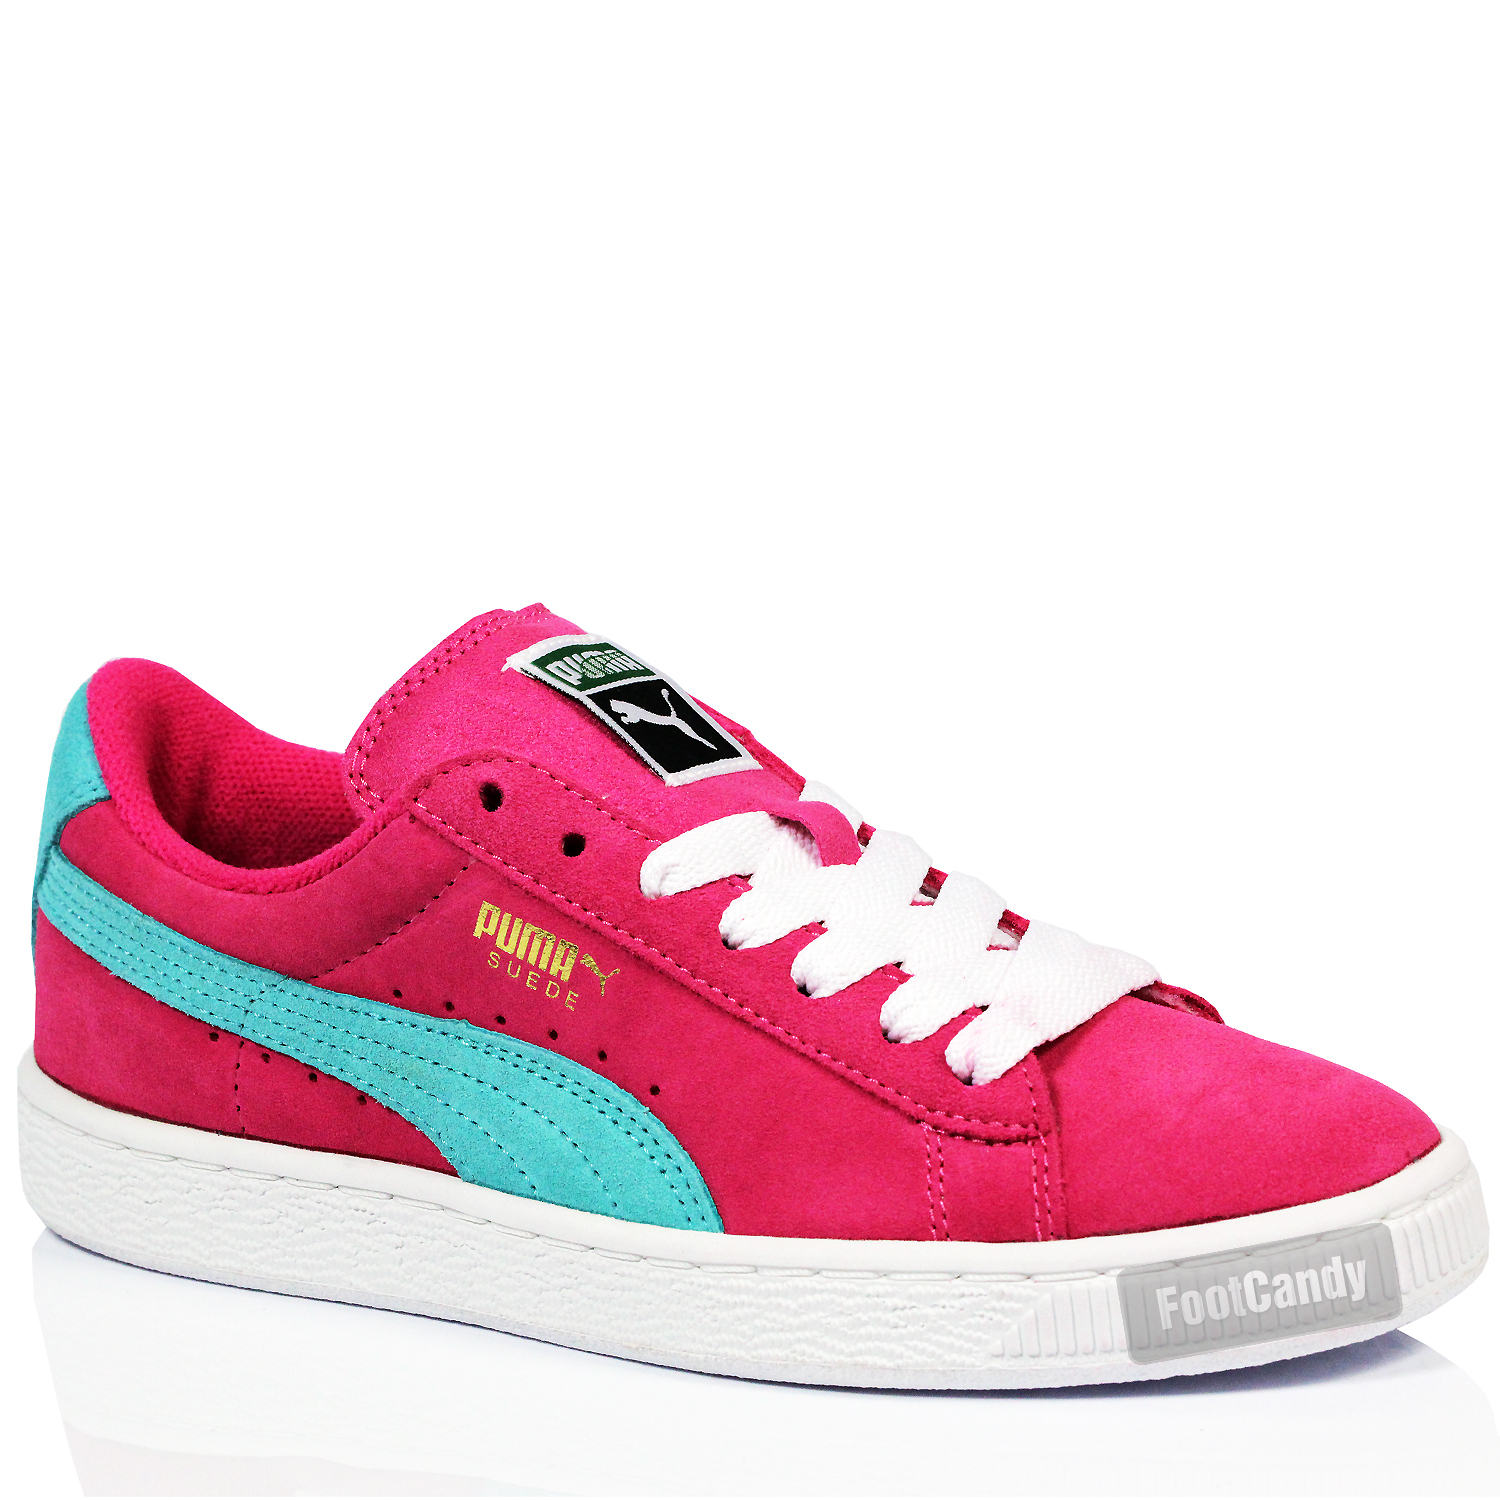 KIDS JUNIOR YOUTHS CLASSIC PUMA SUEDE LEATHER LACE SPORTS ...